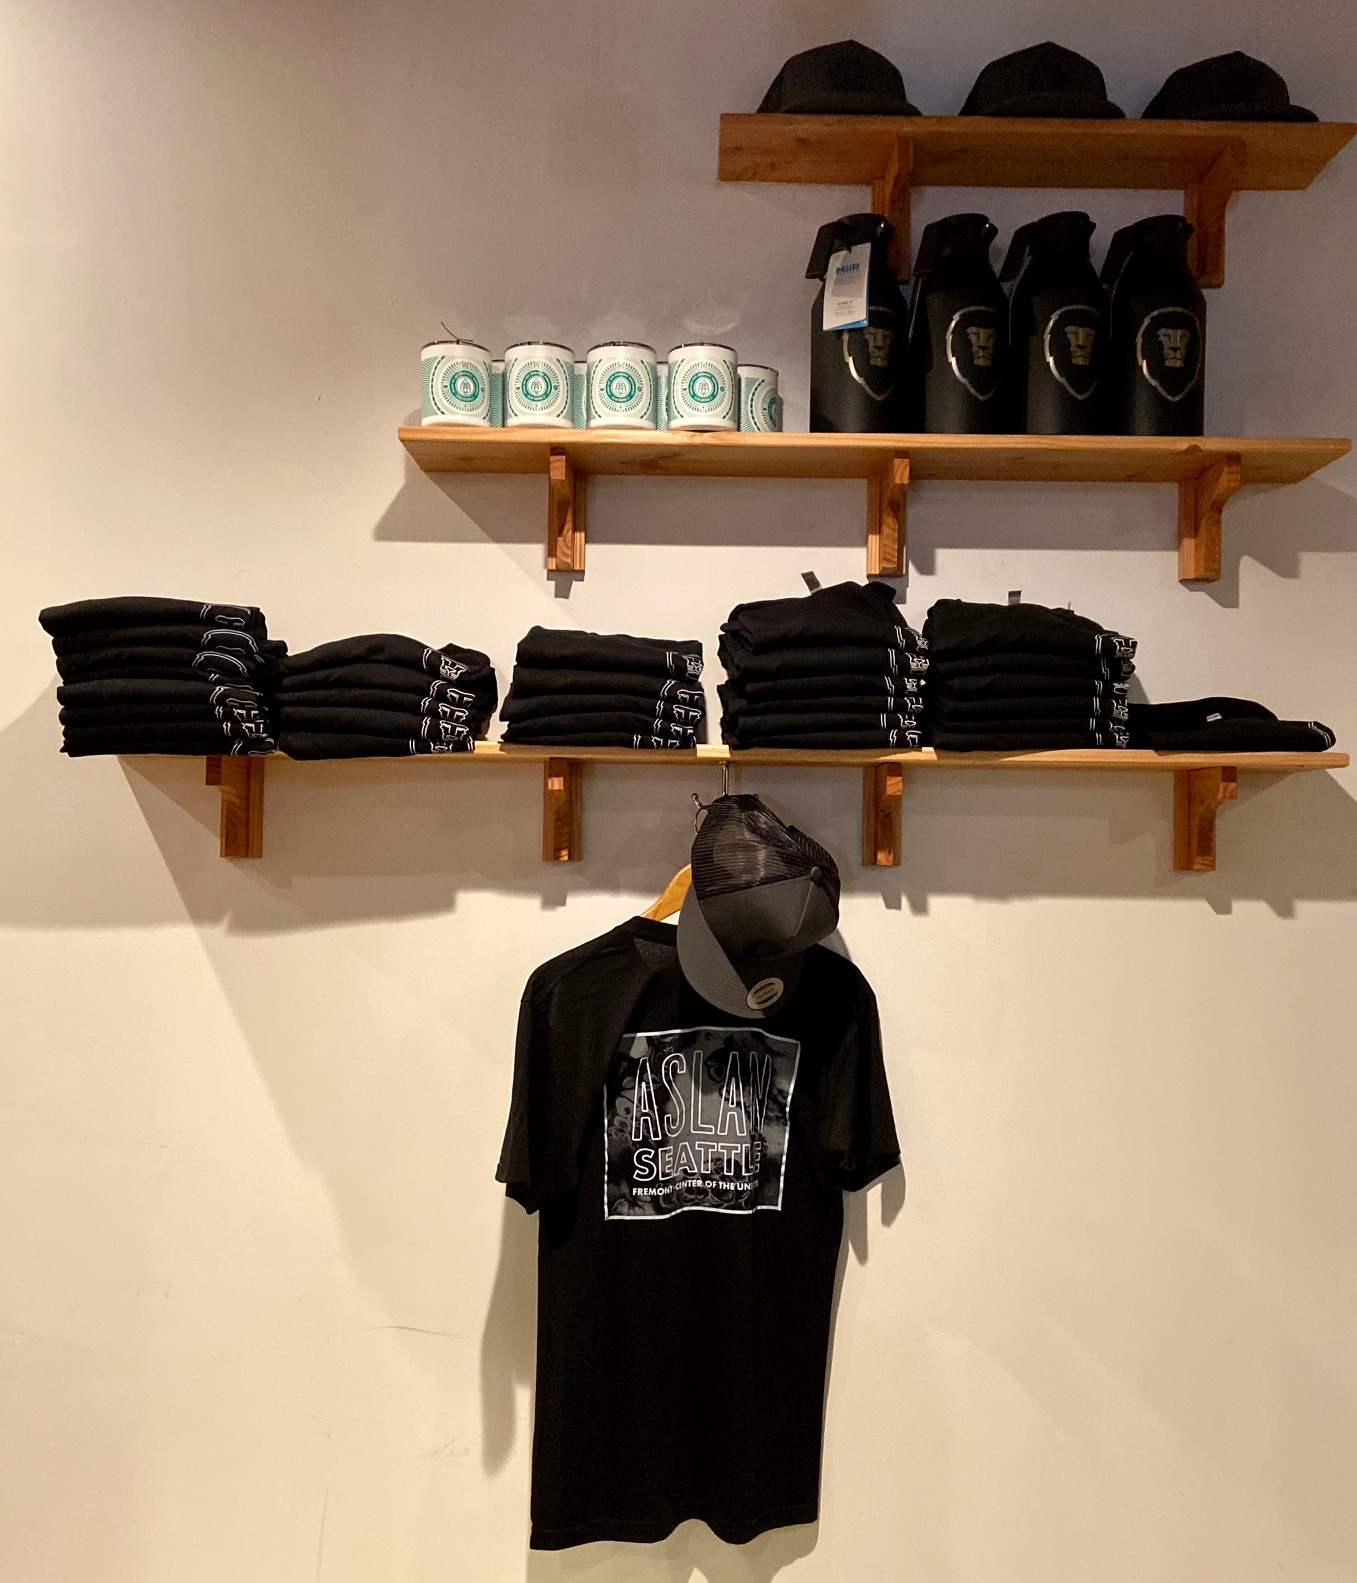 Aslan Brewing Seattle merchandise is available at its newest location.